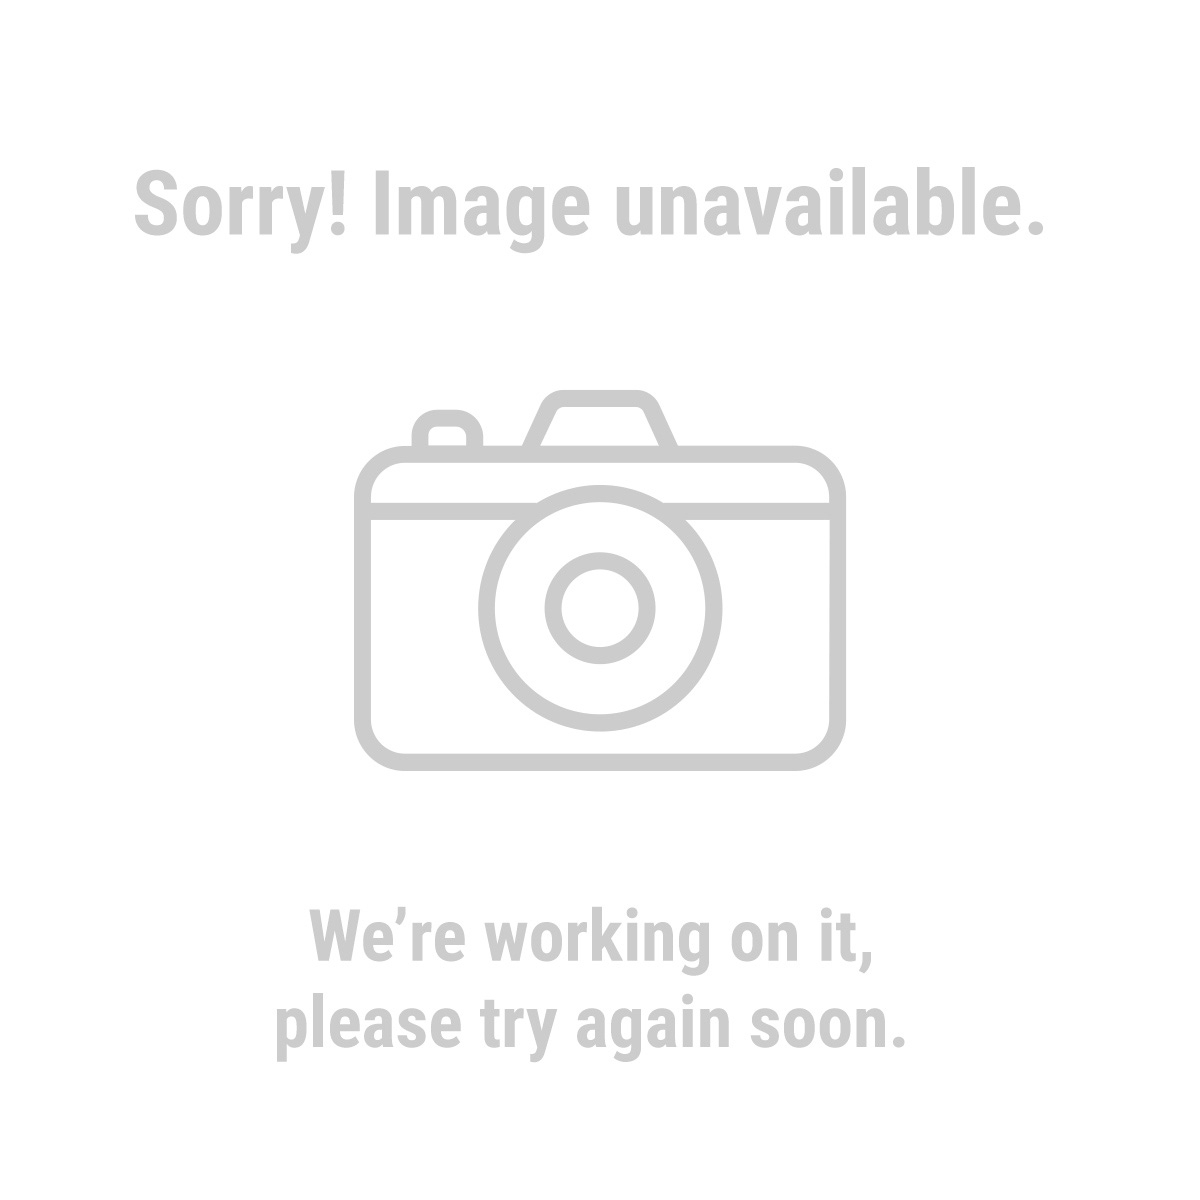 Western Safety 95737 10 Watt Handheld Megaphone